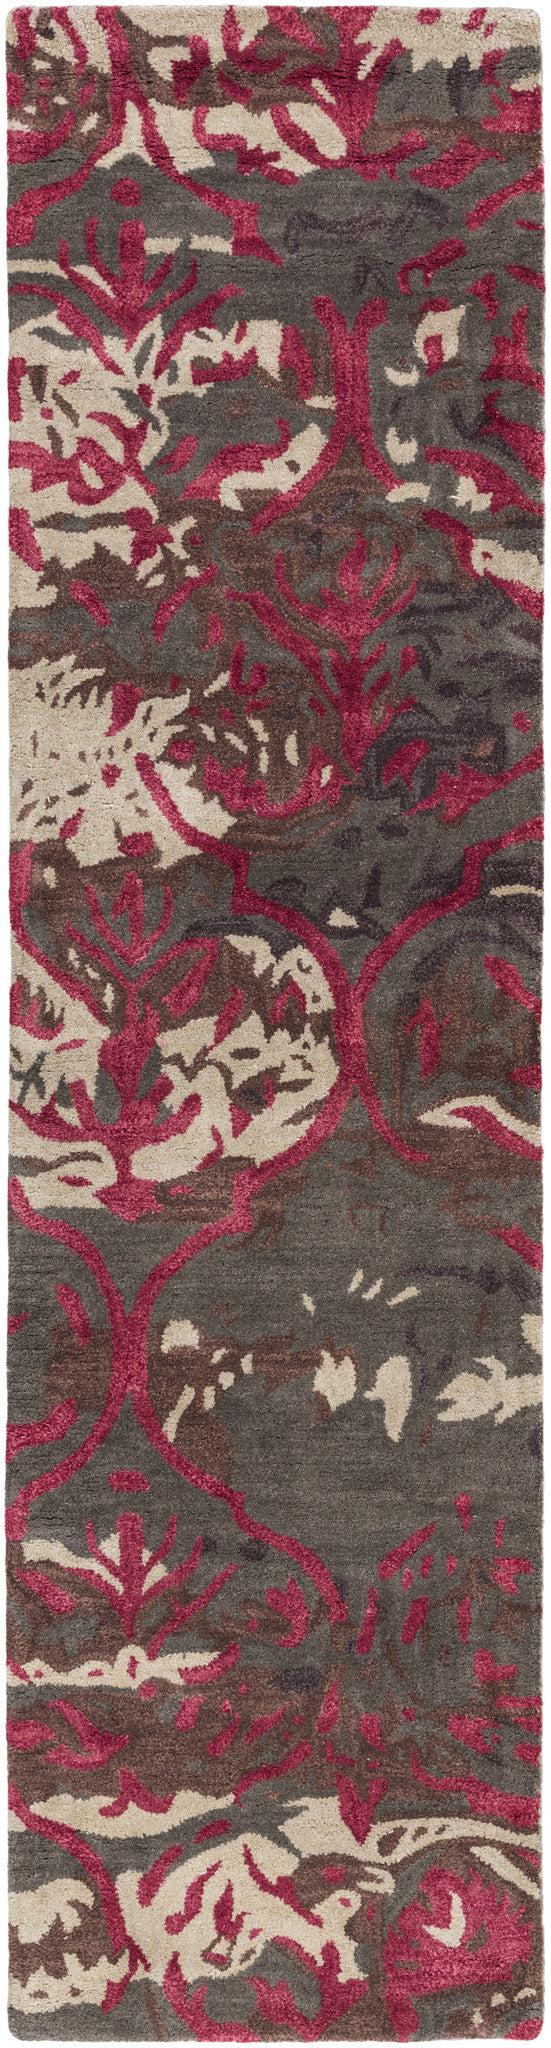 Artistic Weavers Pacific Holly AWPC2289 Area Rug